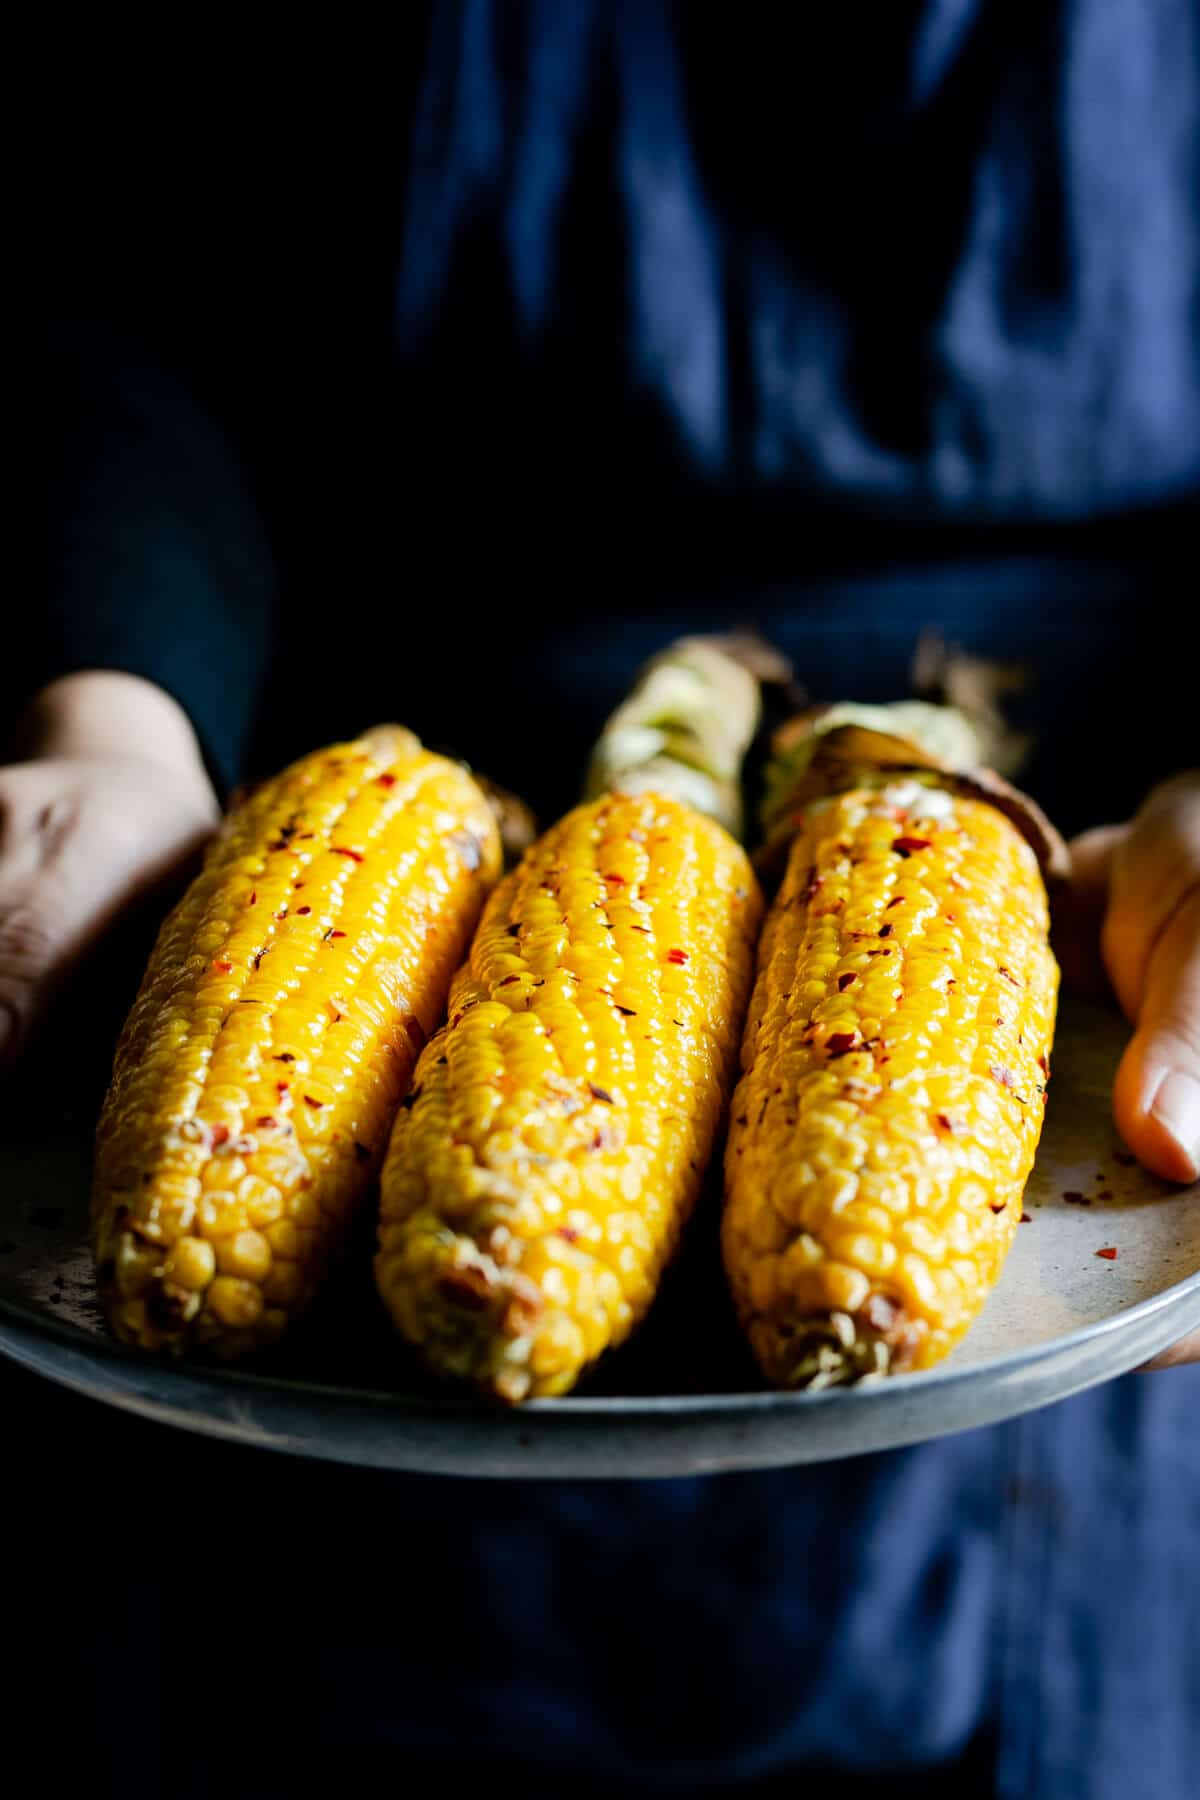 A person holding a plate with cobs of corn in chilli butter